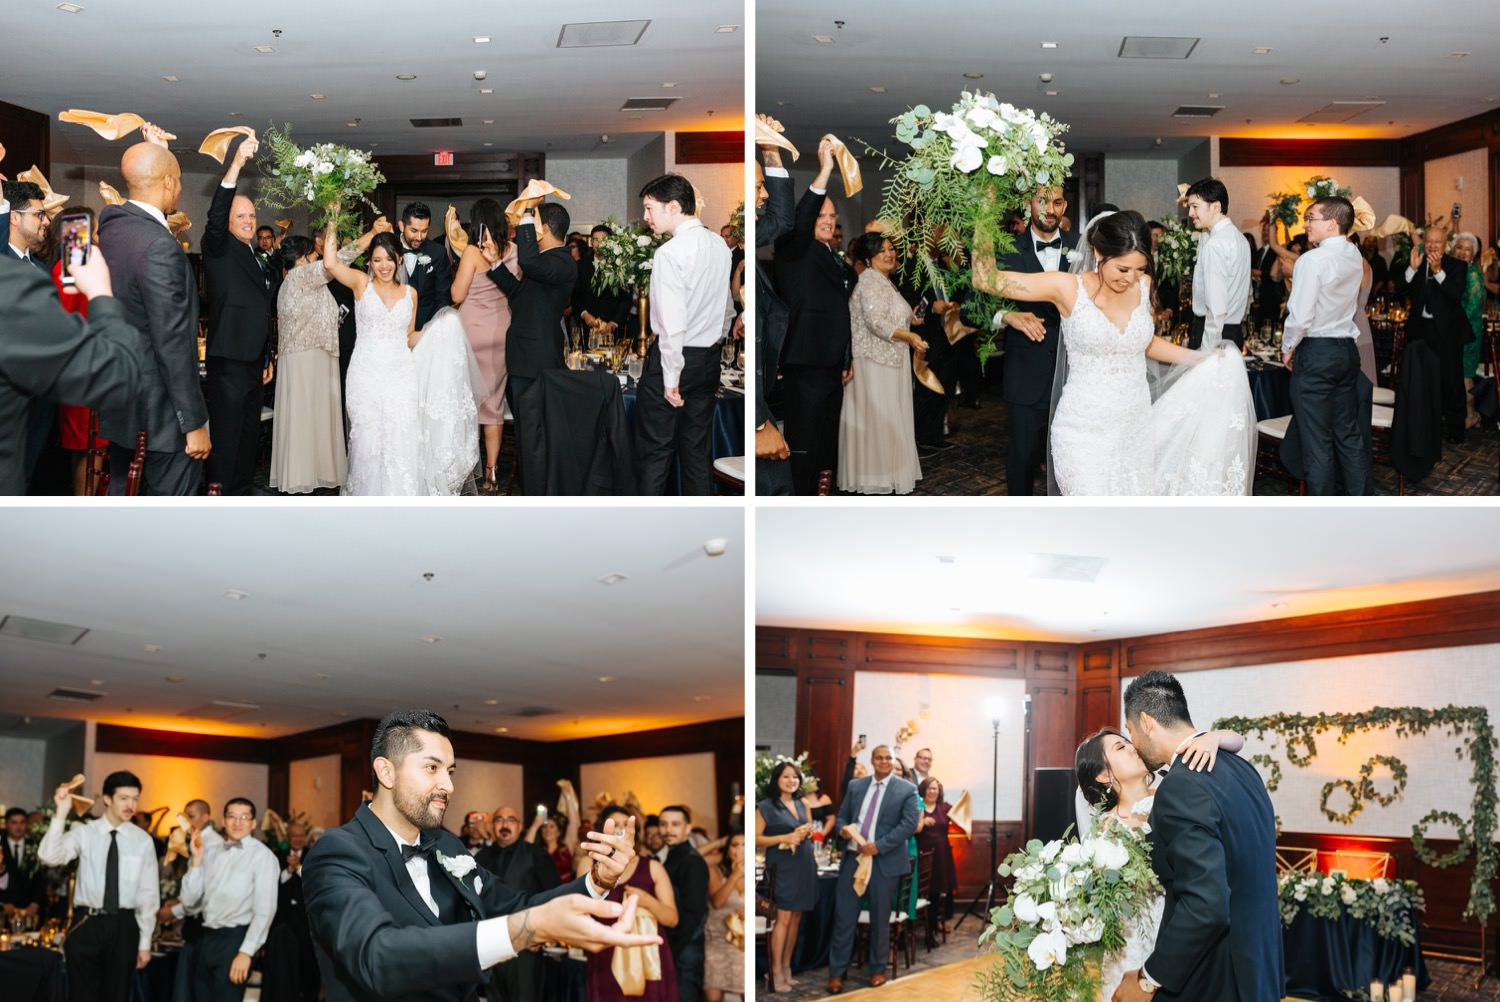 Bride and Groom Grand Entrance into Reception - https://brittneyhannonphotography.com